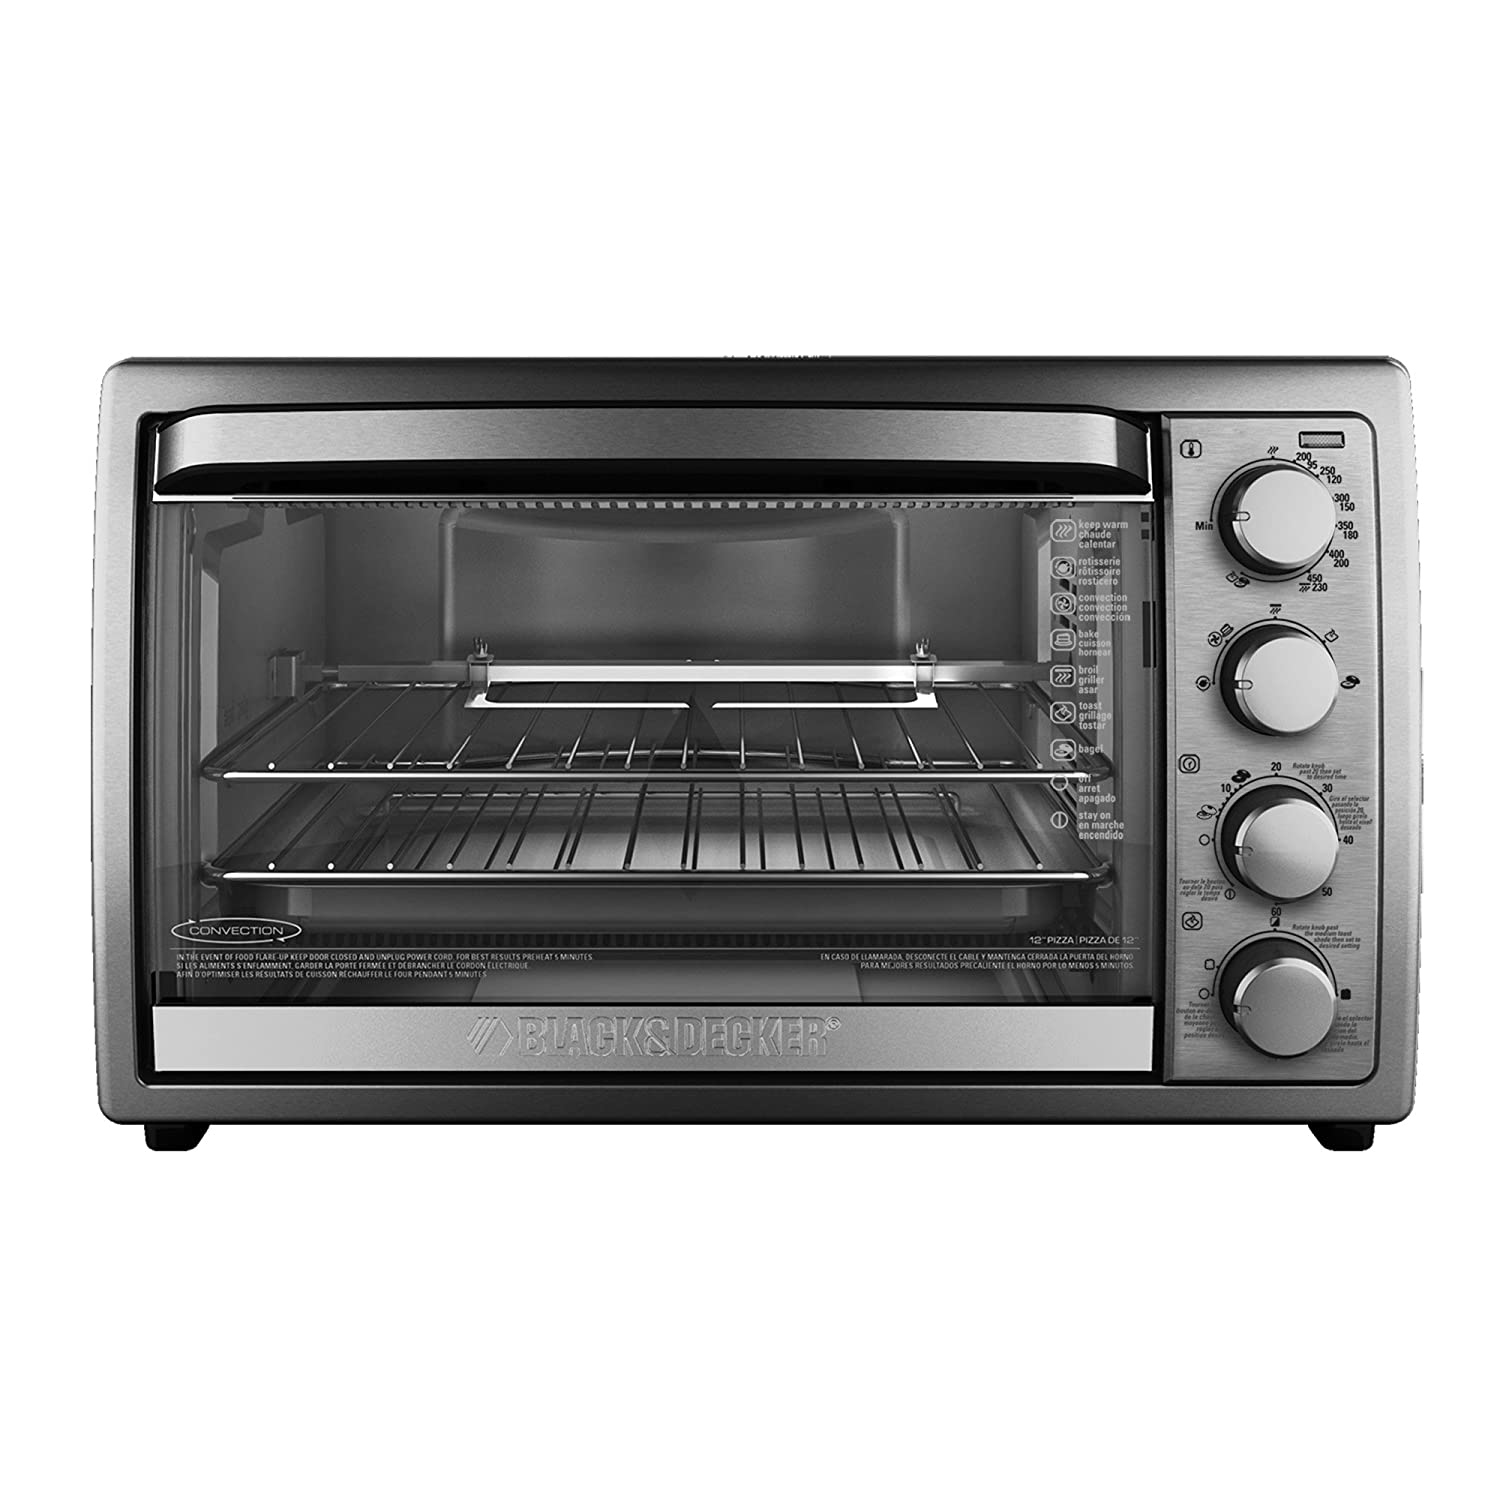 black decker rotisserie convection countertop toaster oven silver to4314ssd 692620184156 ebay. Black Bedroom Furniture Sets. Home Design Ideas